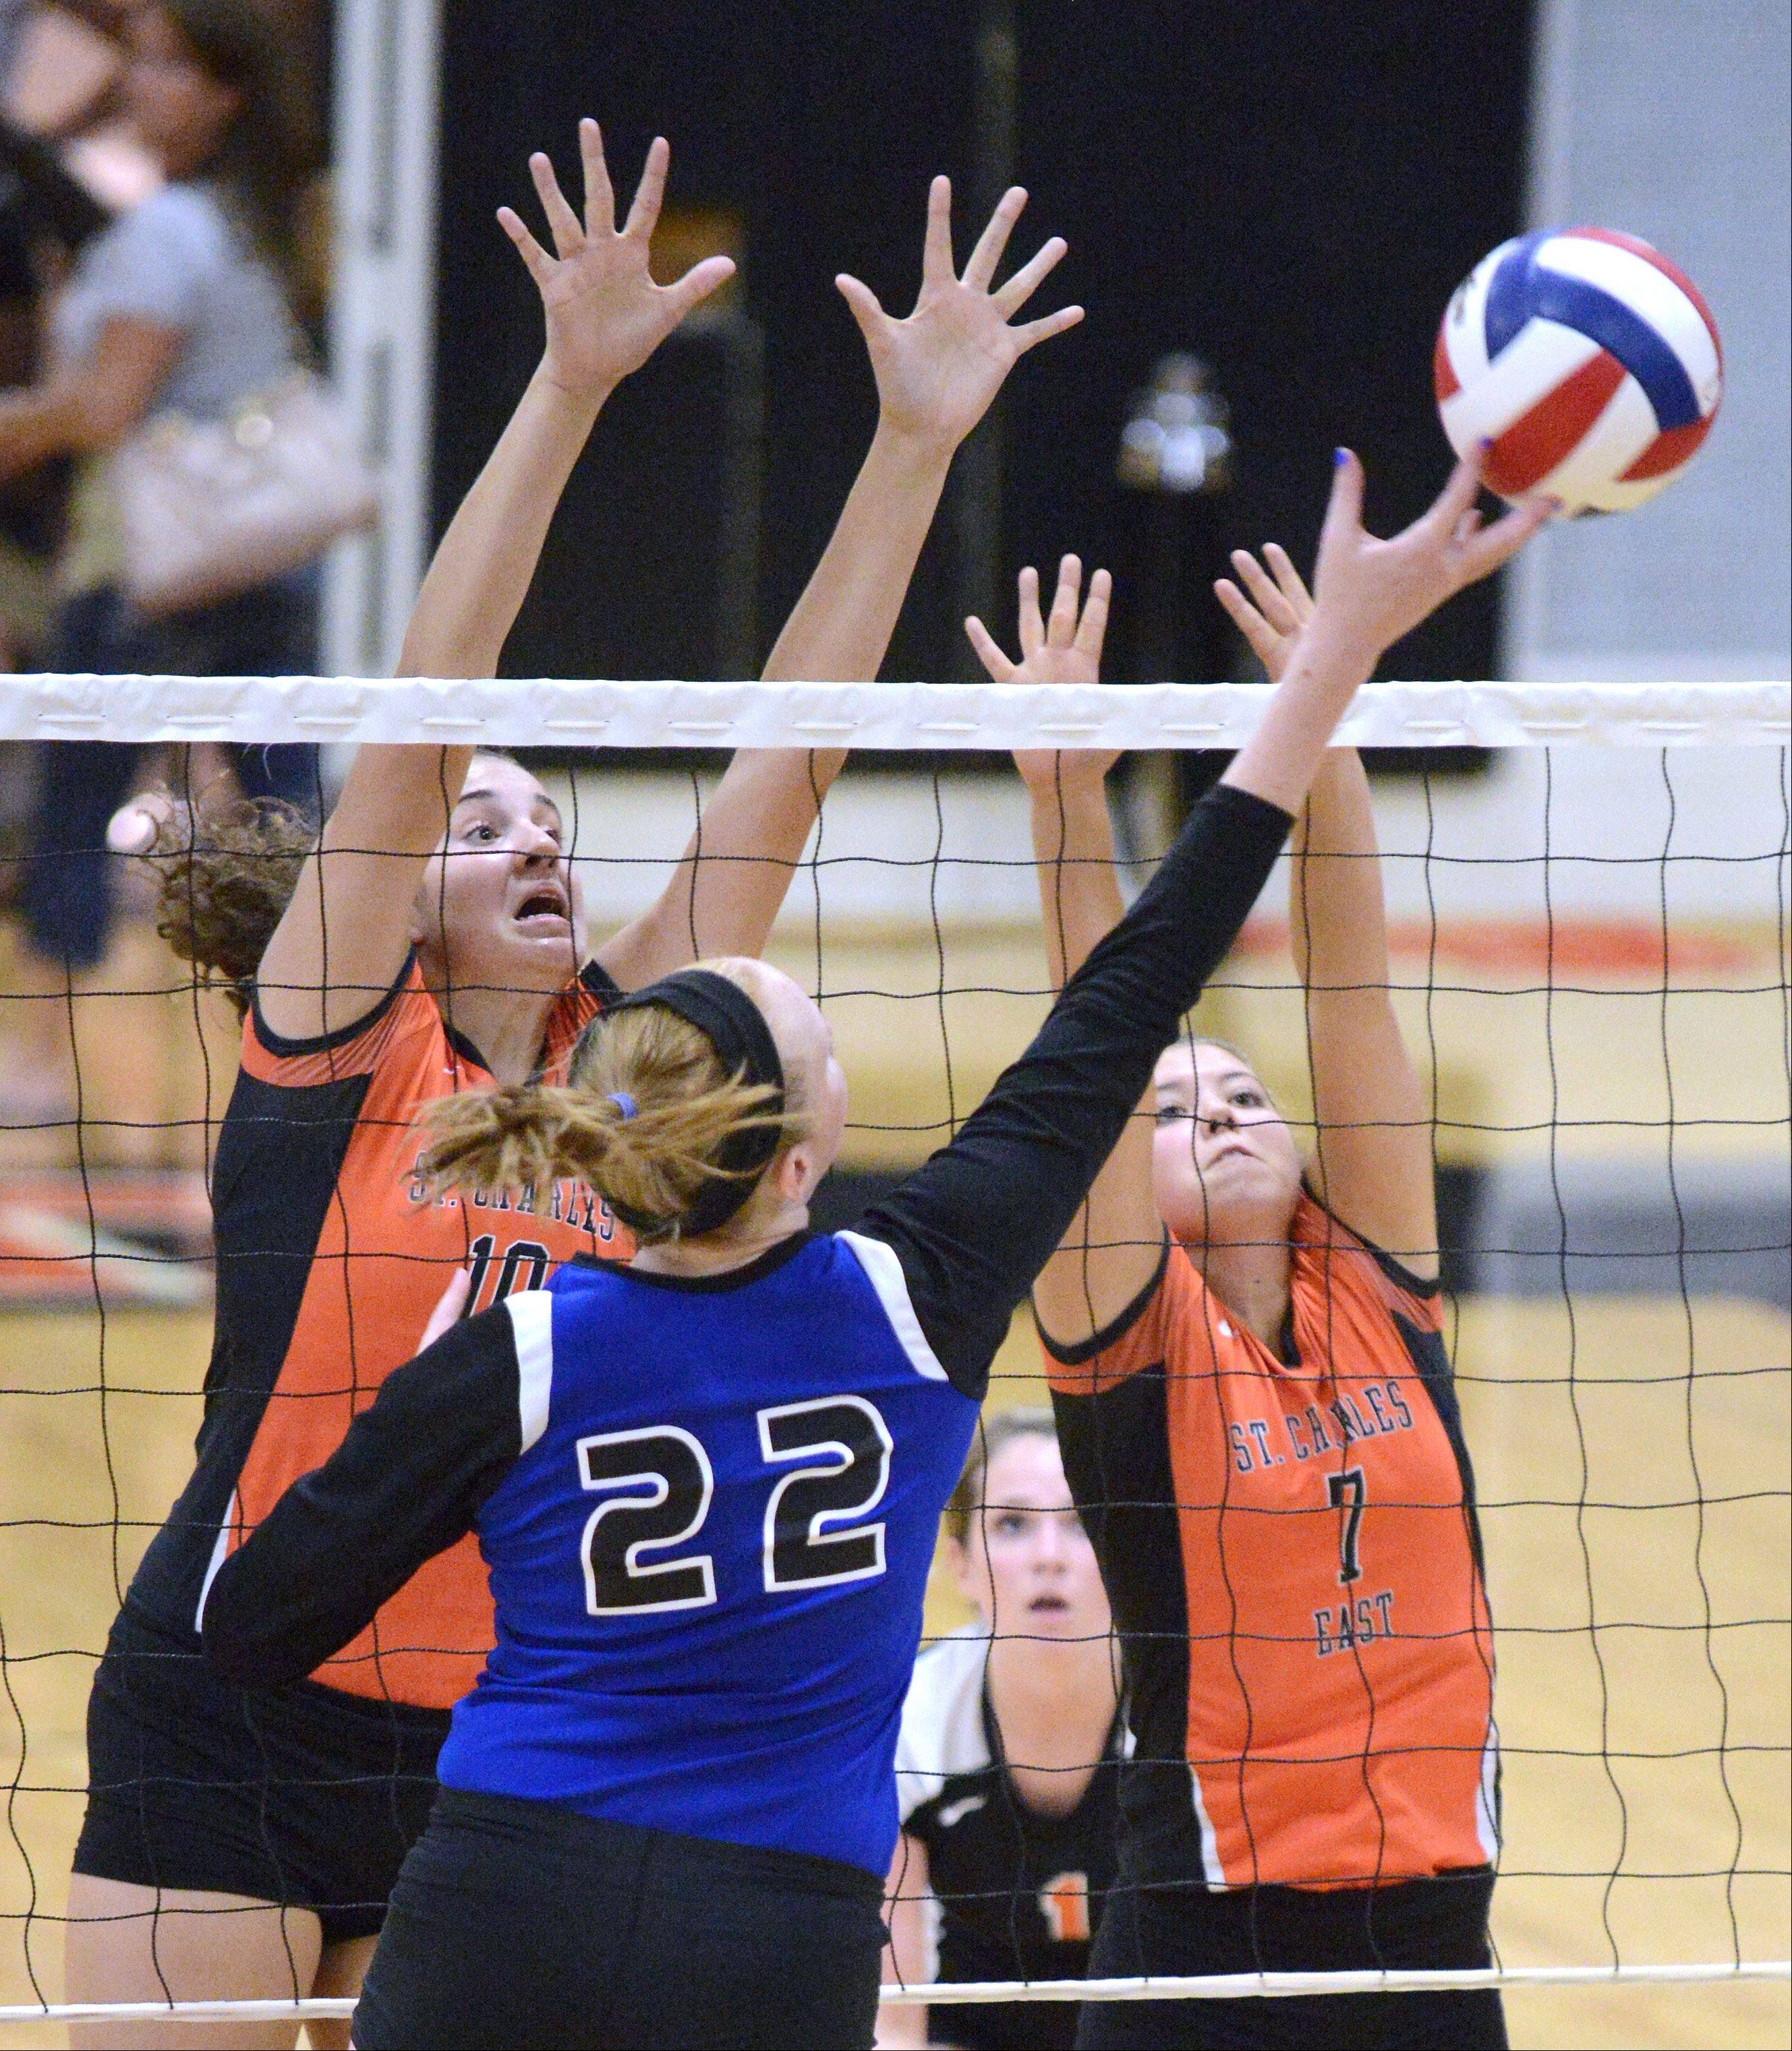 St. Charles East's Mikaela Mosquera and Meagan Smith block a tip of the ball over the net by Rosary's Joanna Wedge in the second game on Wednesday, September 4.